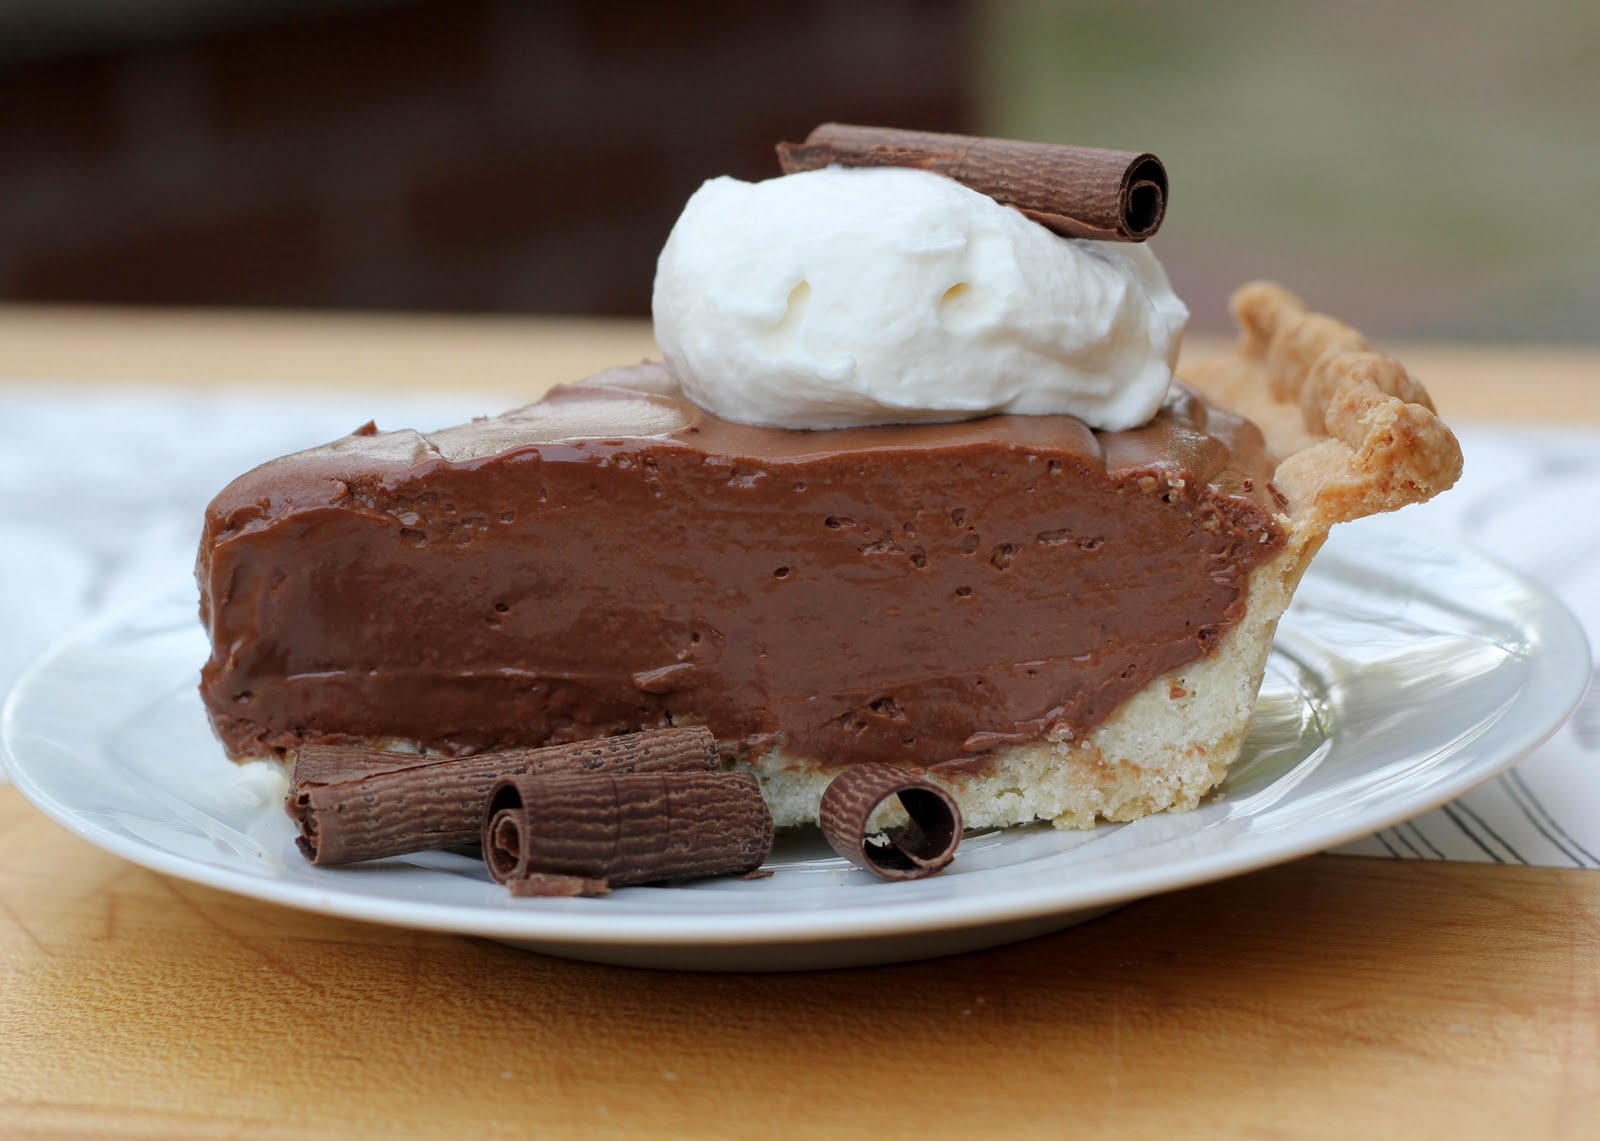 How To Make French Silk Pie?